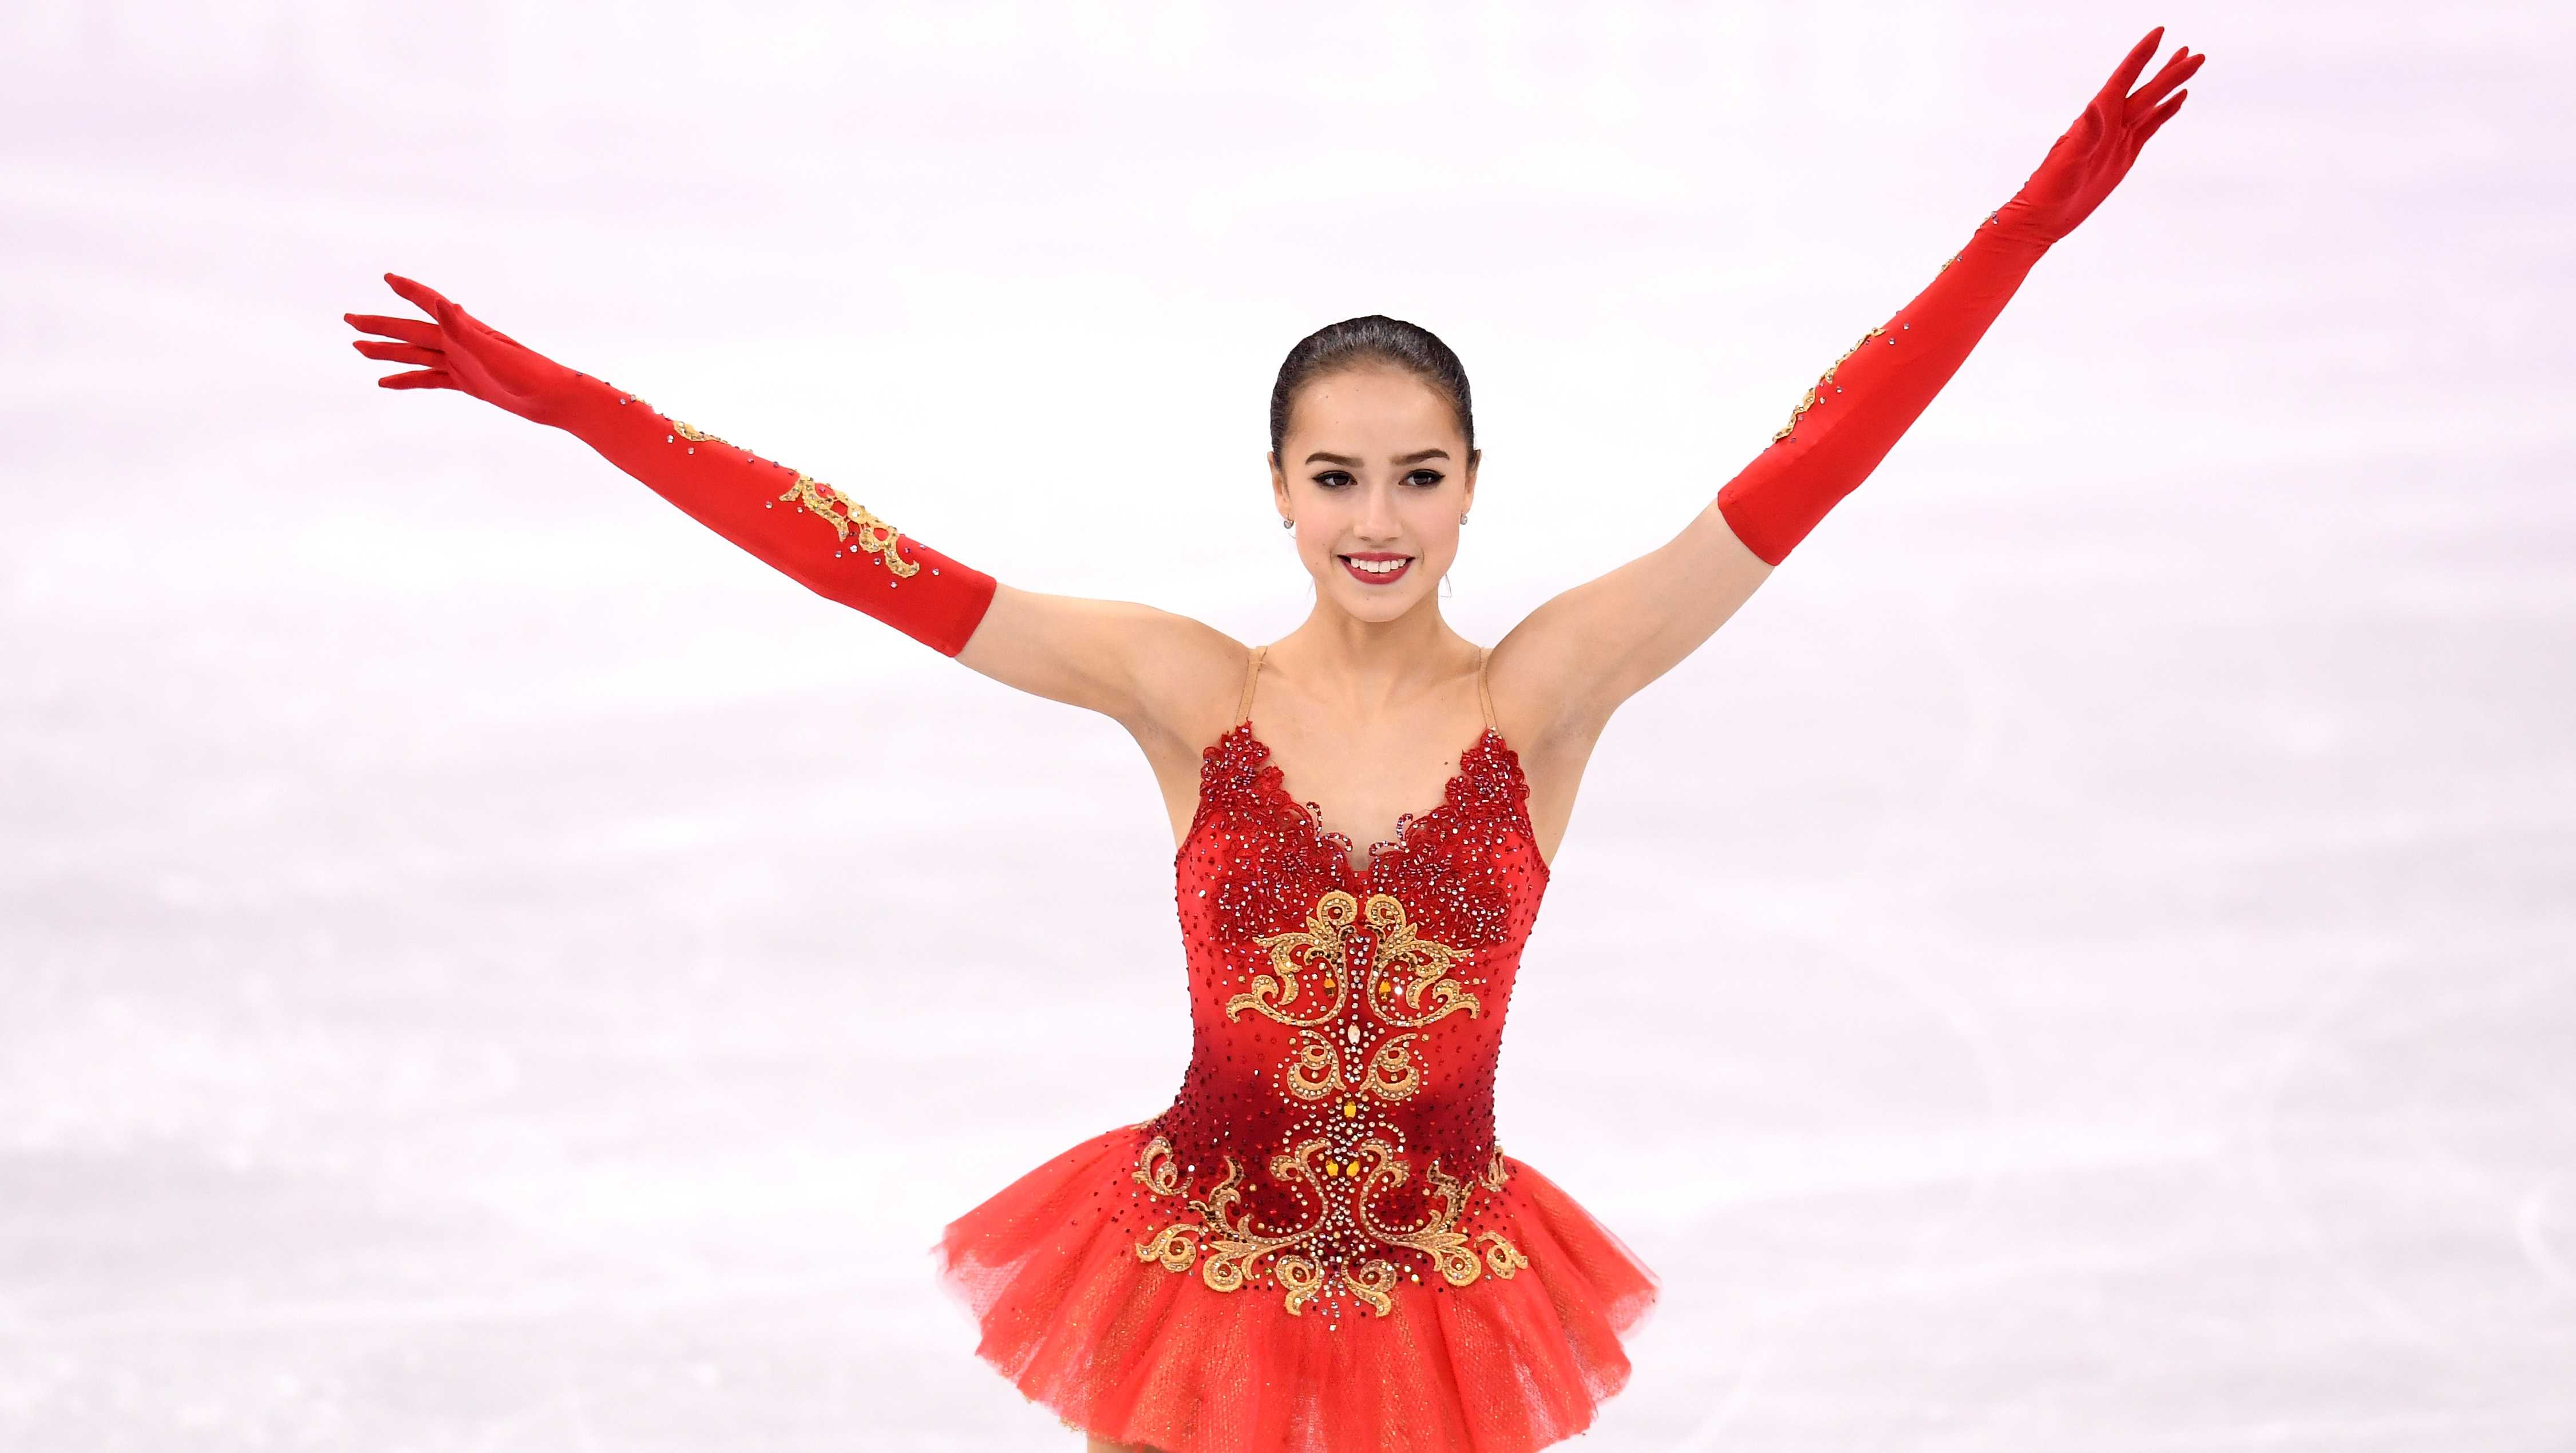 Gold medal winner Alina Zagitova of Olympic Athlete from Russia celebrates during the victory ceremony for the Ladies Single Skating Free Skating on day fourteen of the PyeongChang 2018 Winter Olympic Games at Gangneung Ice Arena on February 23, 2018 in Gangneung, South Korea.